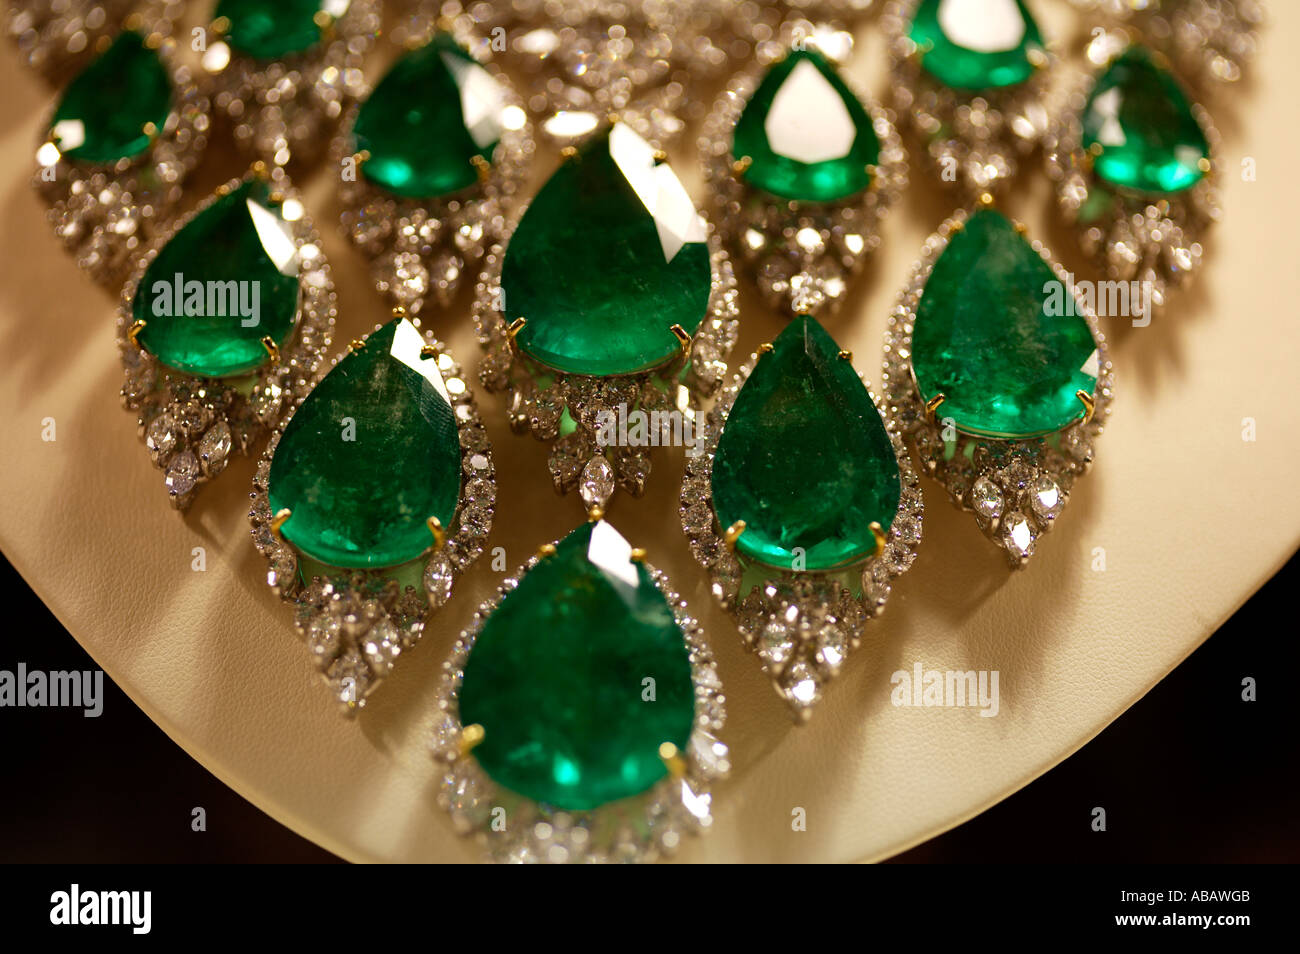 winner shop transparency necklace and trapiche muzo subsampling rare eight emeralds product emerald colored selim bib upscale the gemstones mouzannar scale amal over false crop with